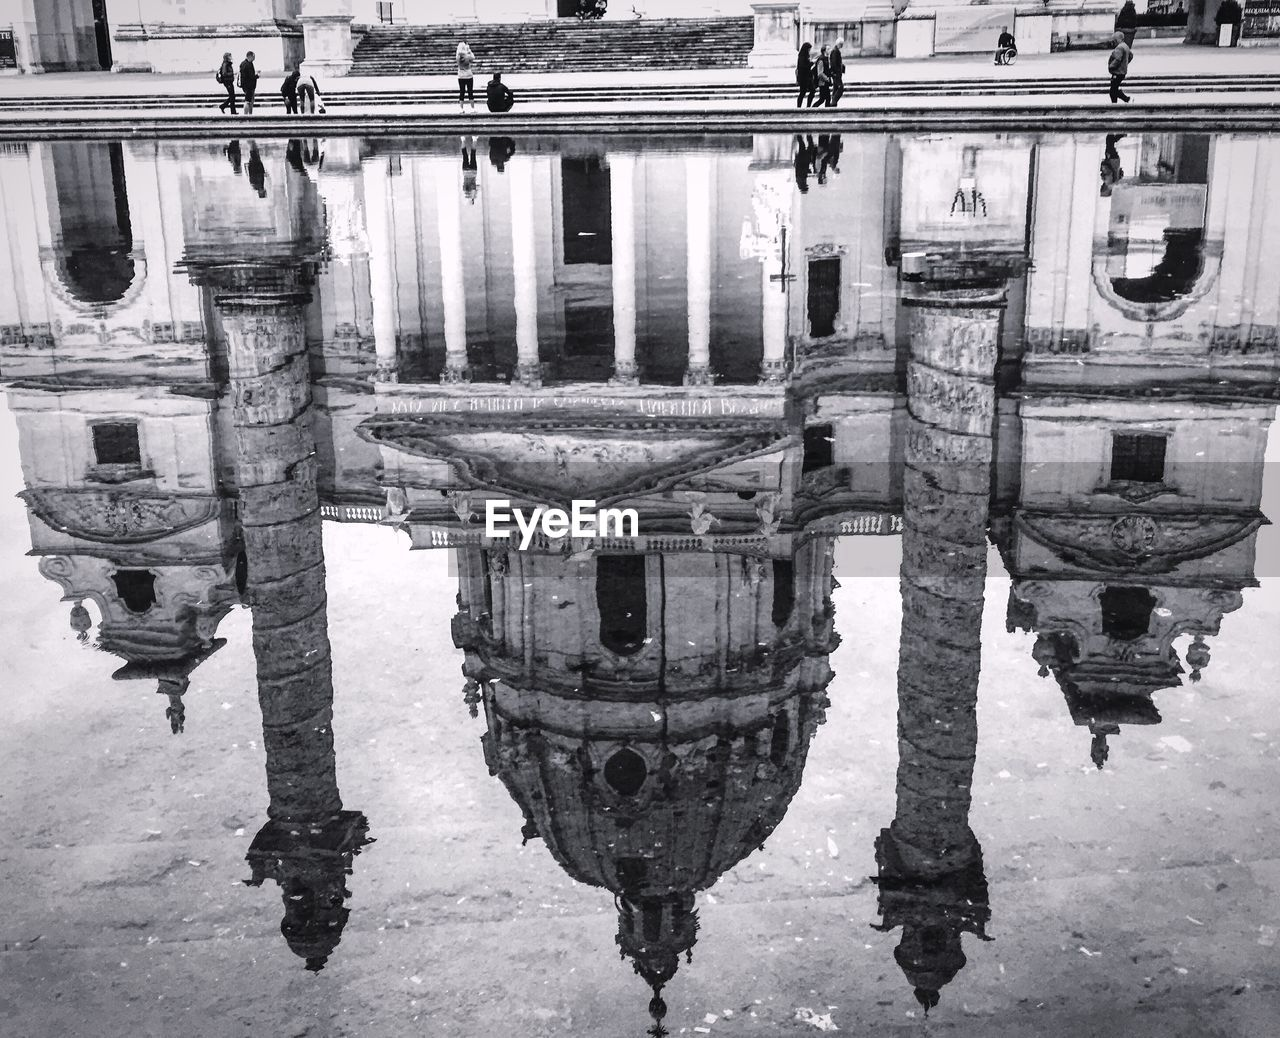 Reflection of basilica in water